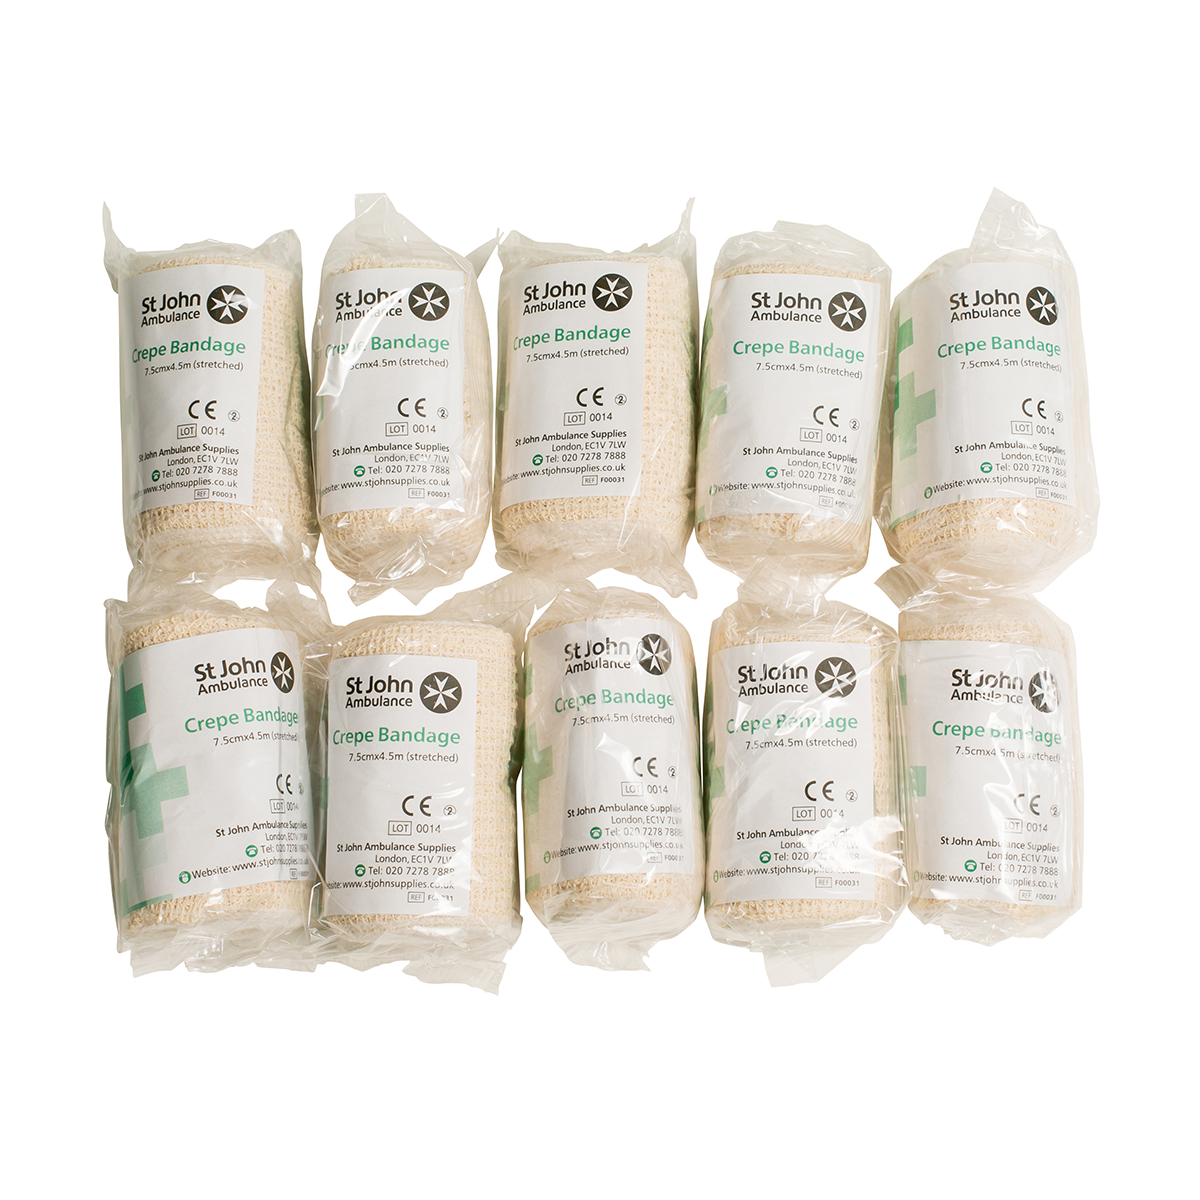 Pack of 10 7.5cm x 4.5m St John Ambulance Crepe Bandage